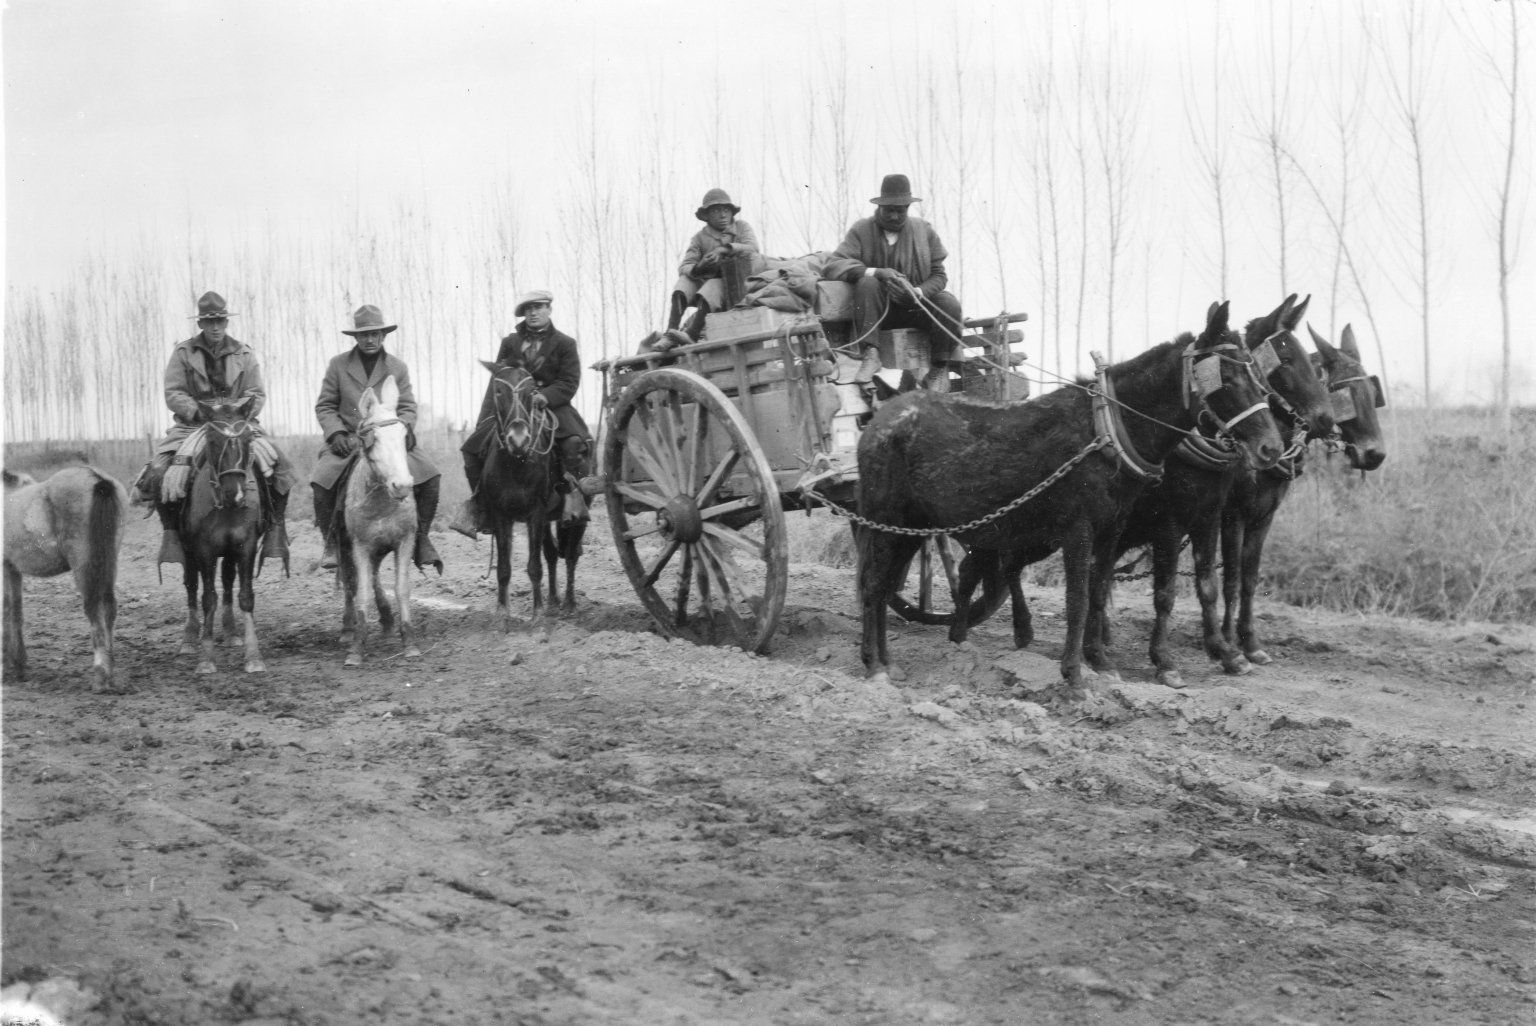 Expedition members with mules